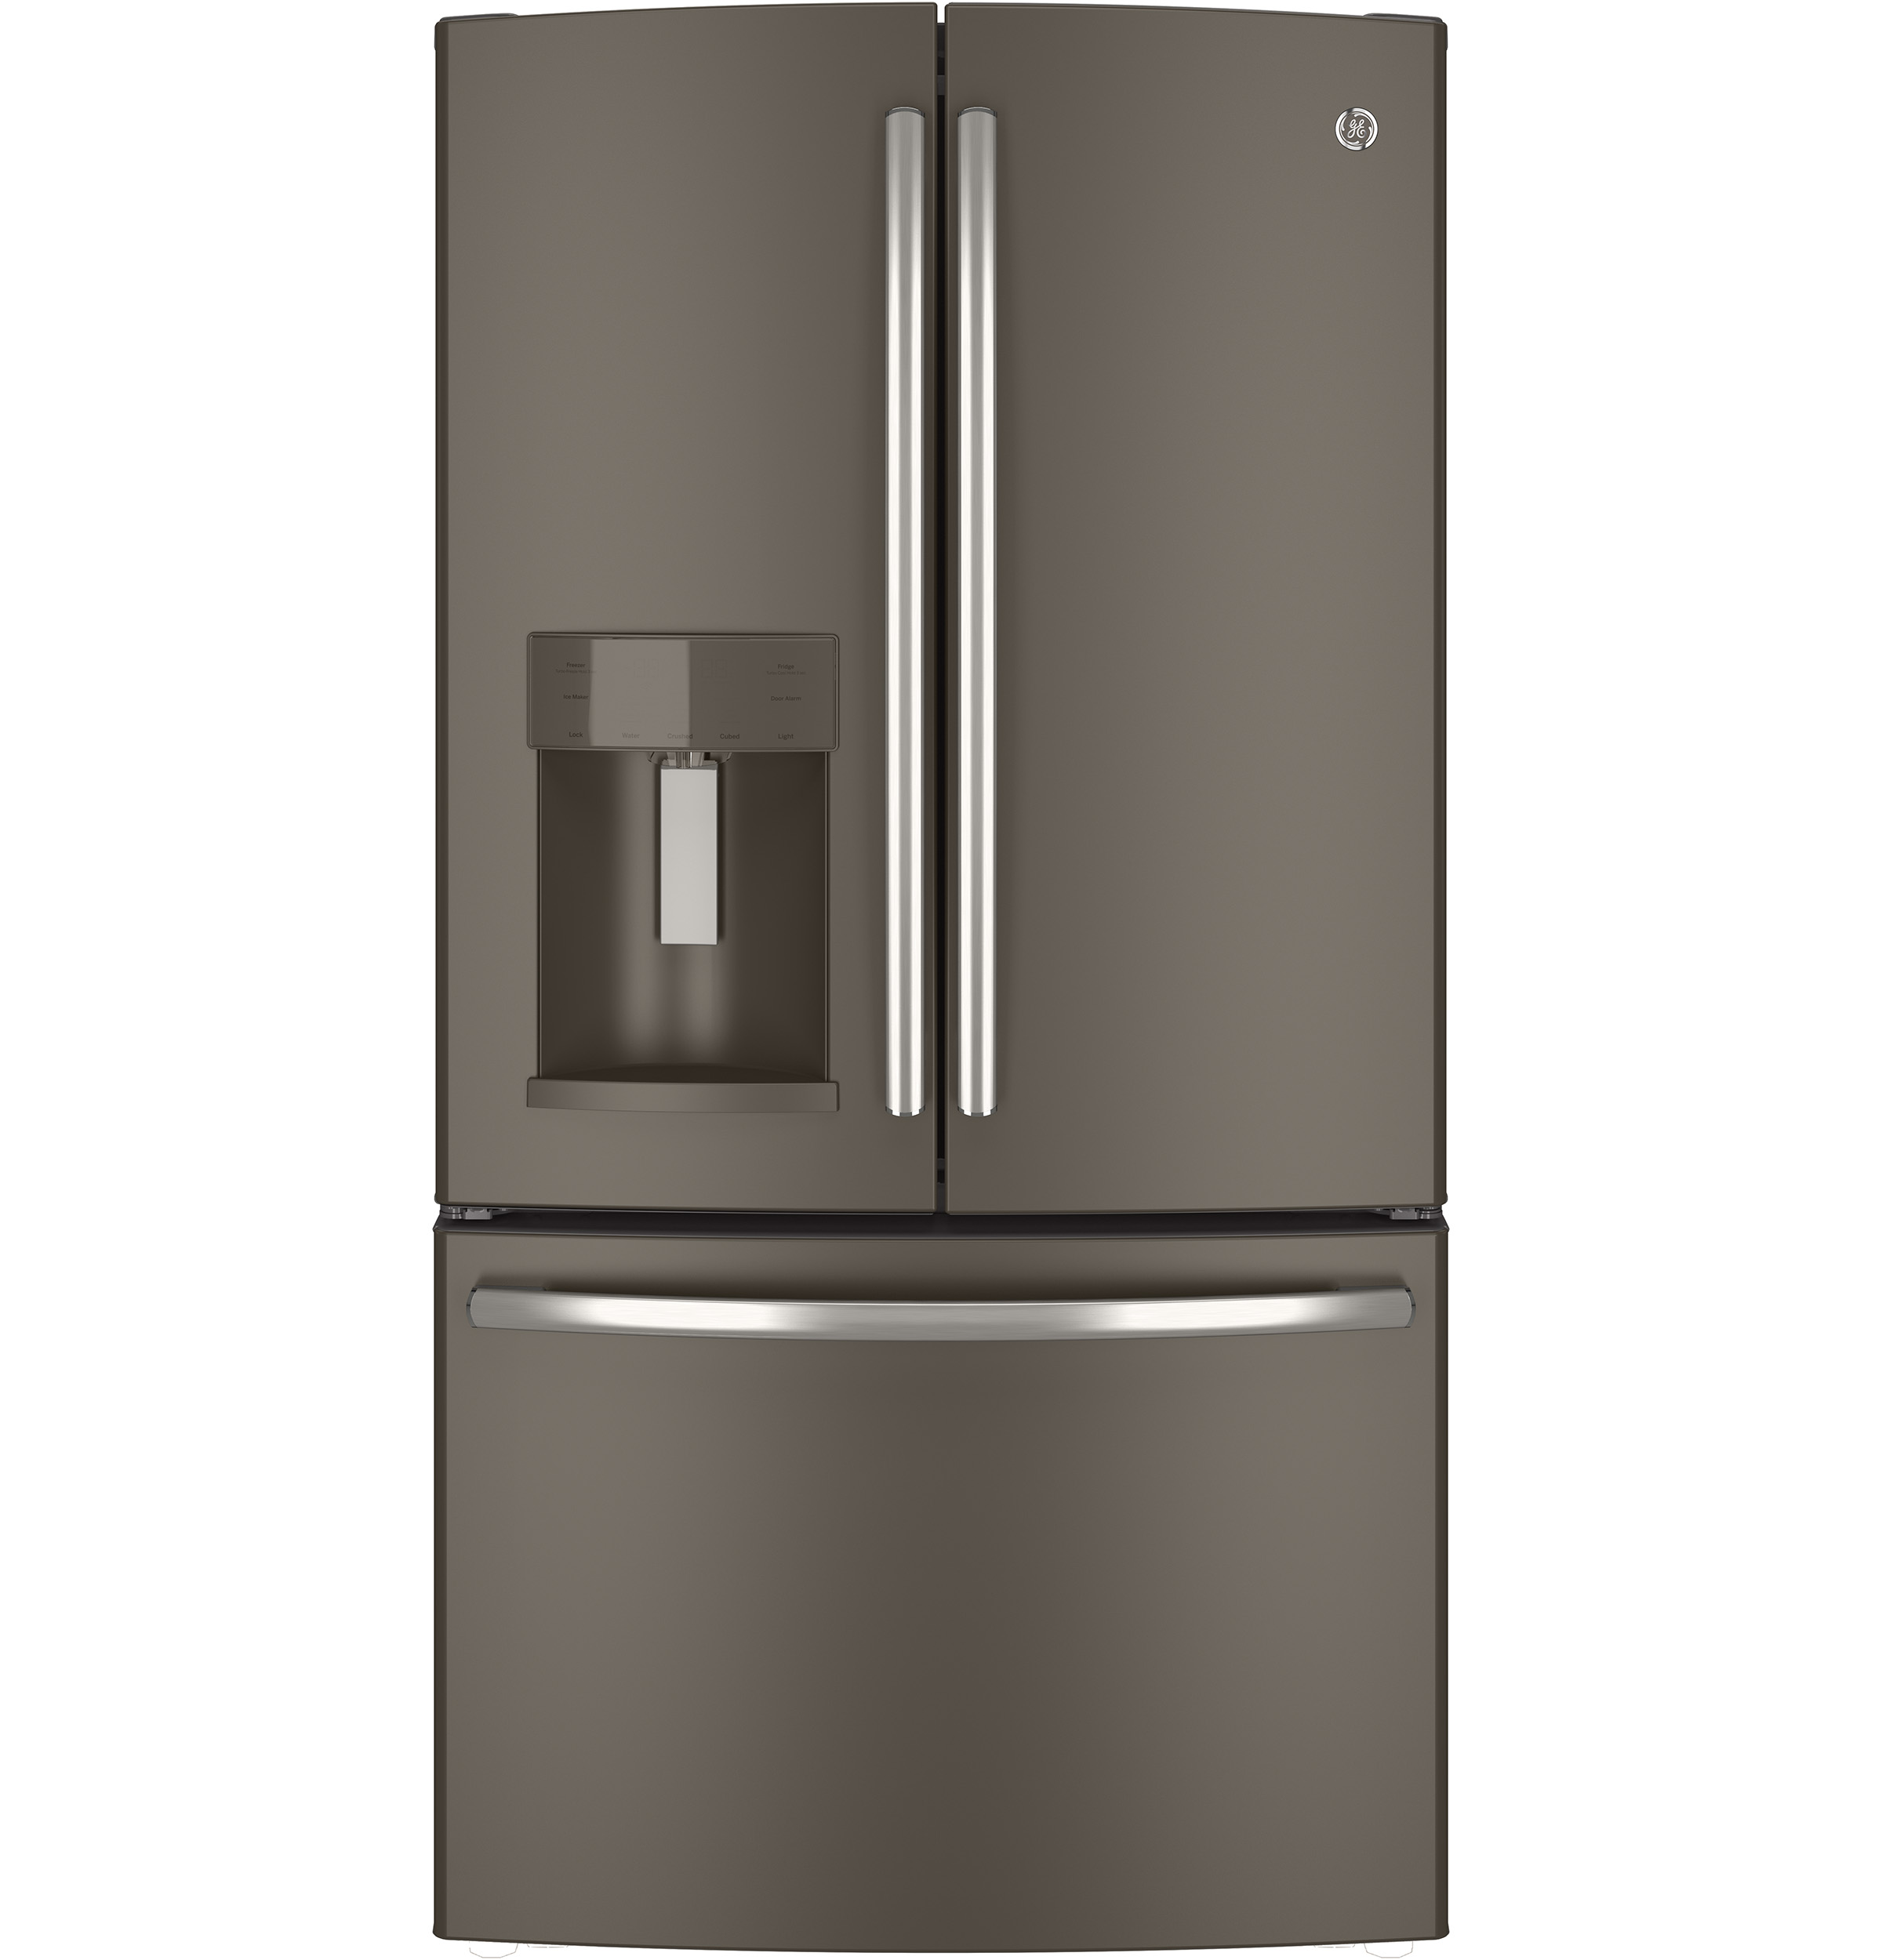 Ge Energy Star 277 Cu Ft French Door Refrigerator Gfe28hmhes Alarm Circuit Product Image